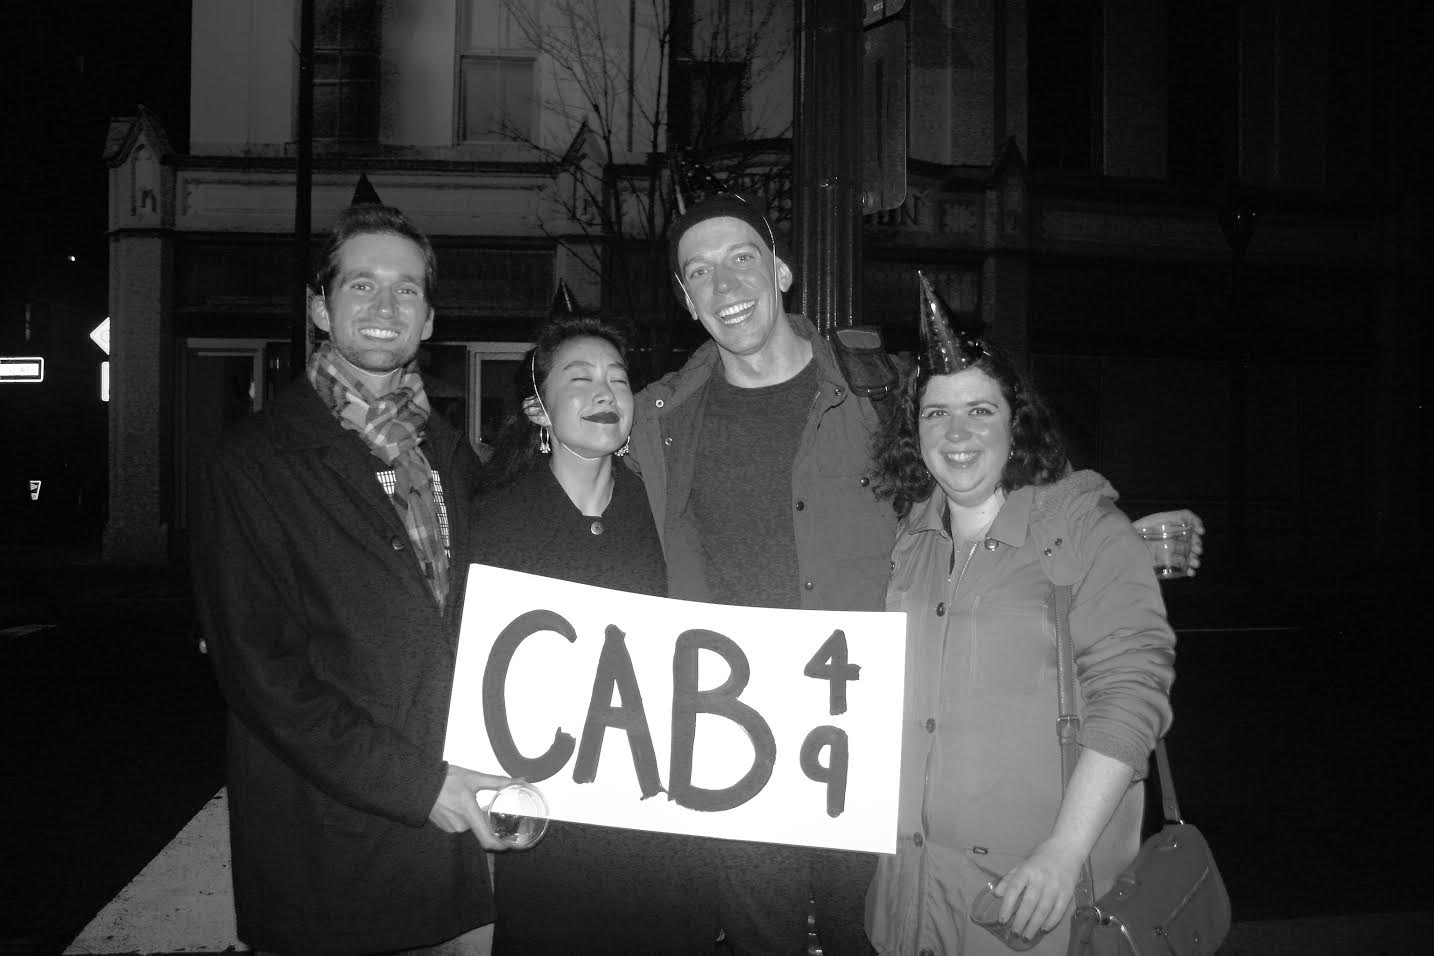 Steven Koernig, Ashley Chang, Kevin Hourigan, Davina Moss, the leadership team of Cab 49